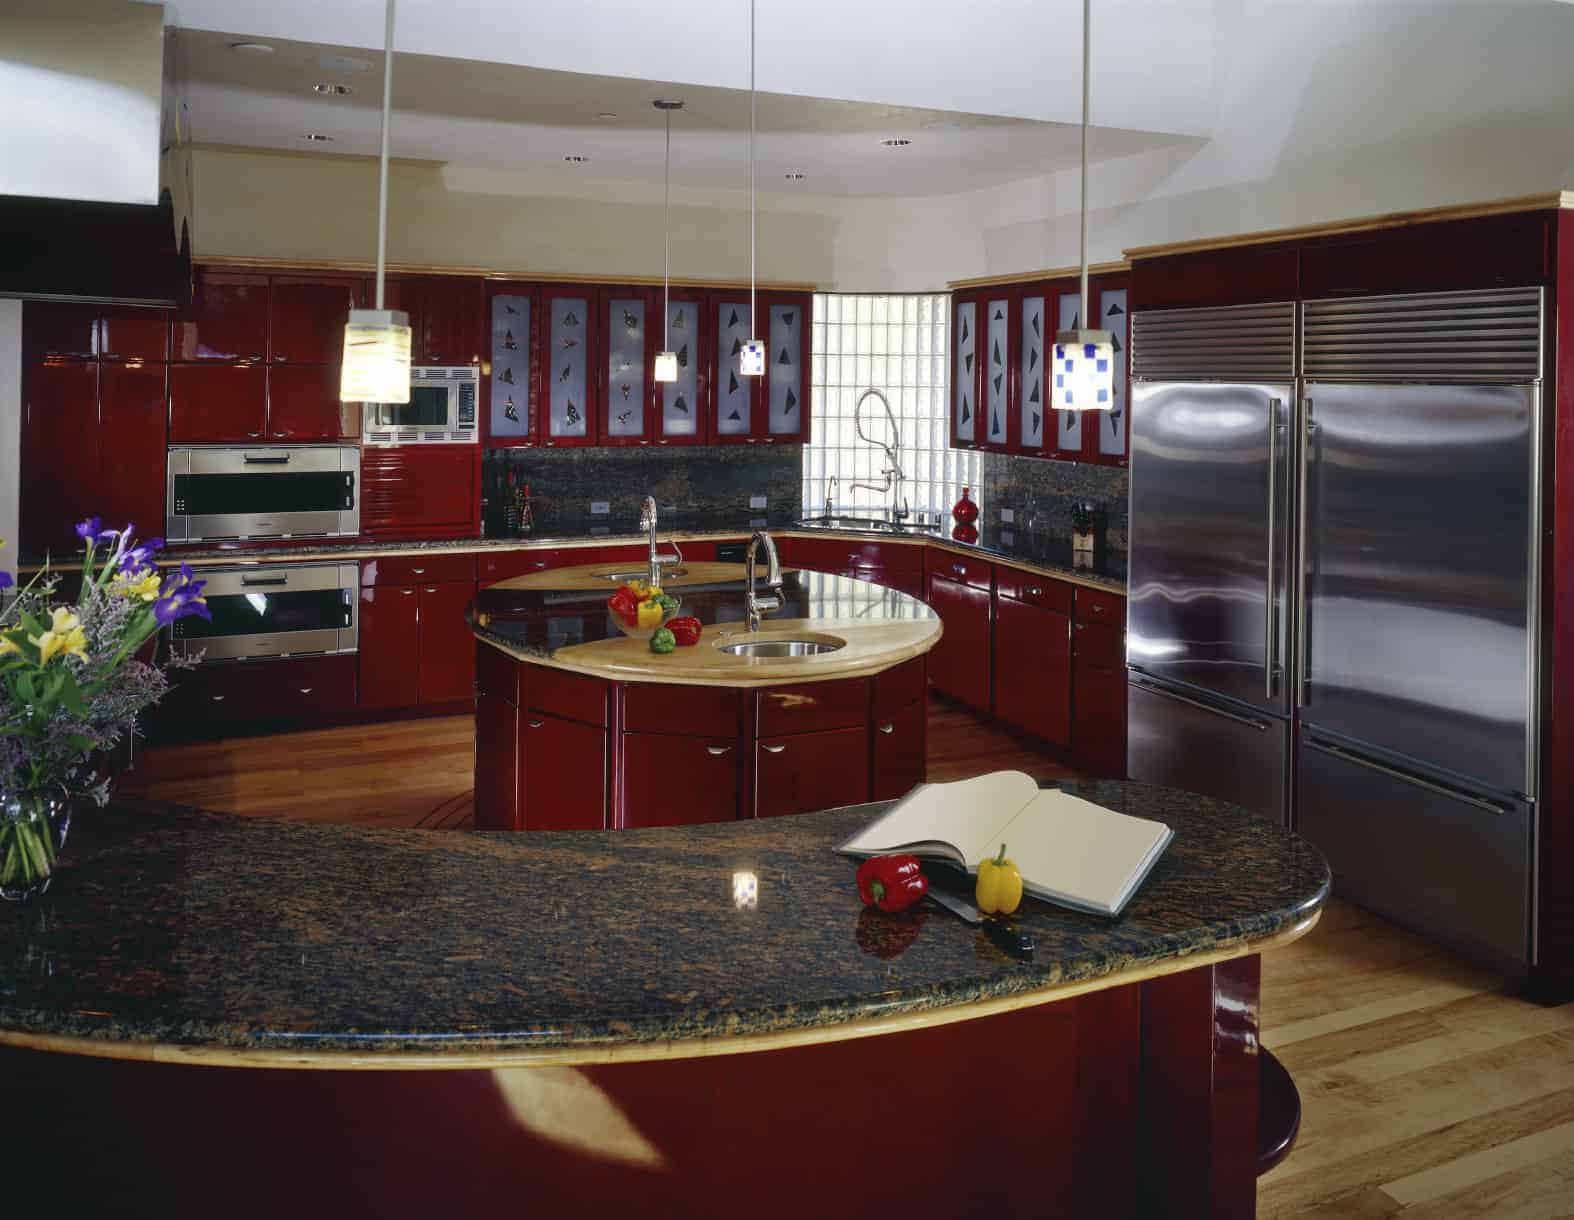 Stunning kitchen with glossy red cabinets, round island with sink and curved peninsula.